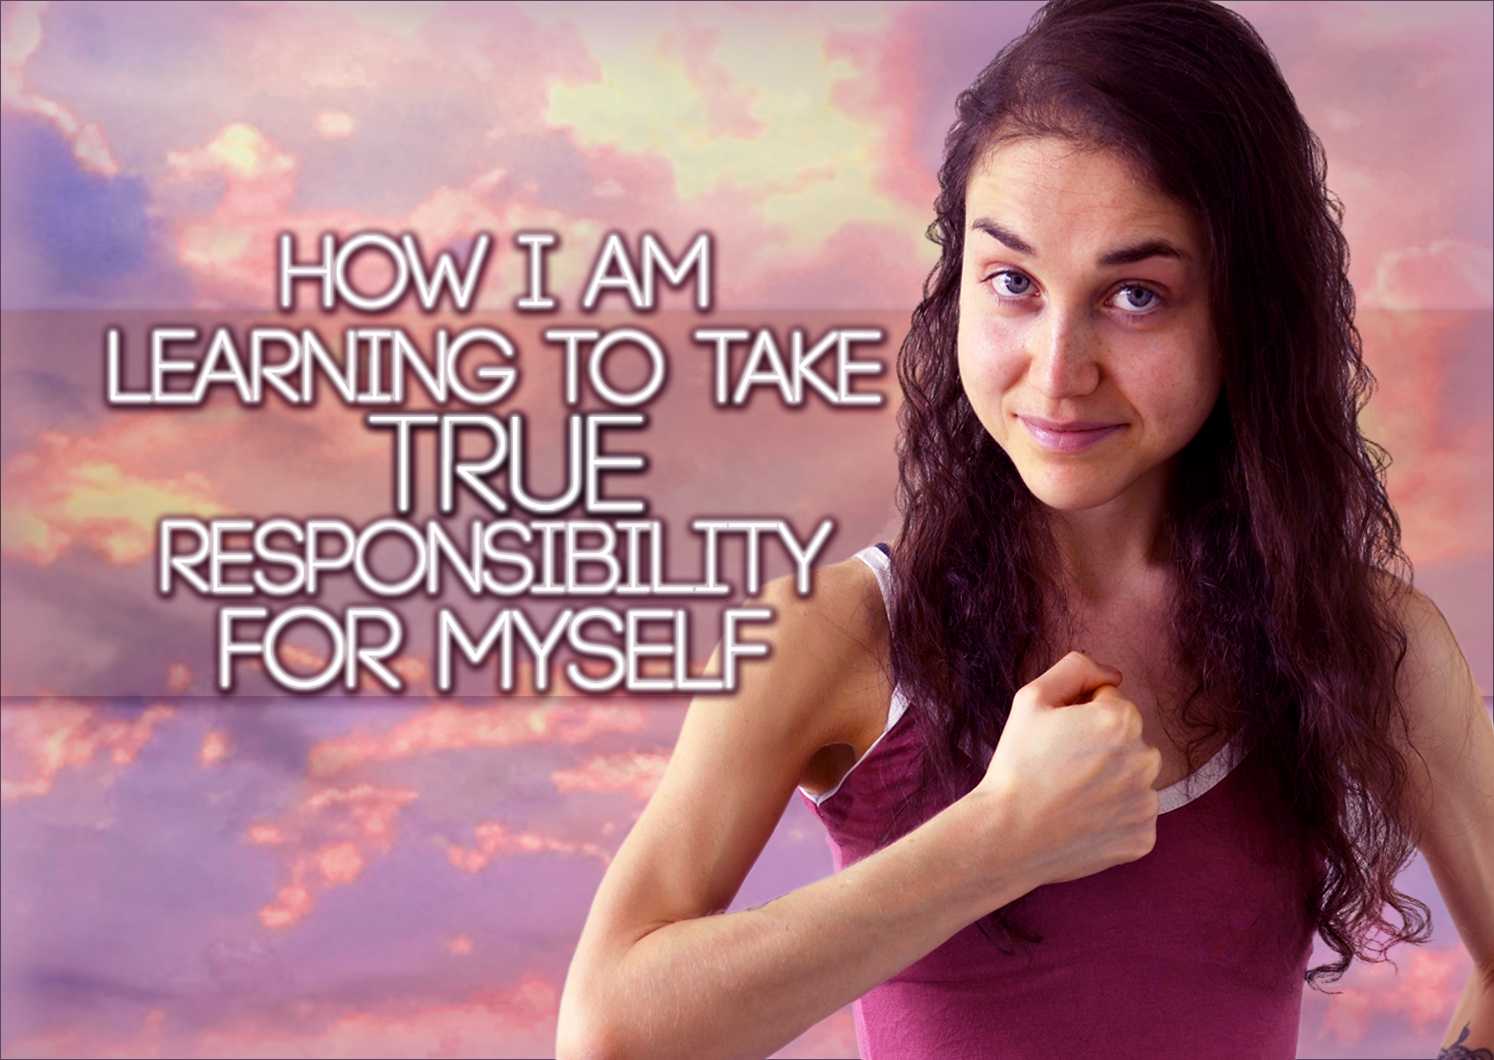 How I Am Learning To Take TRUE Responsibility For Myself: